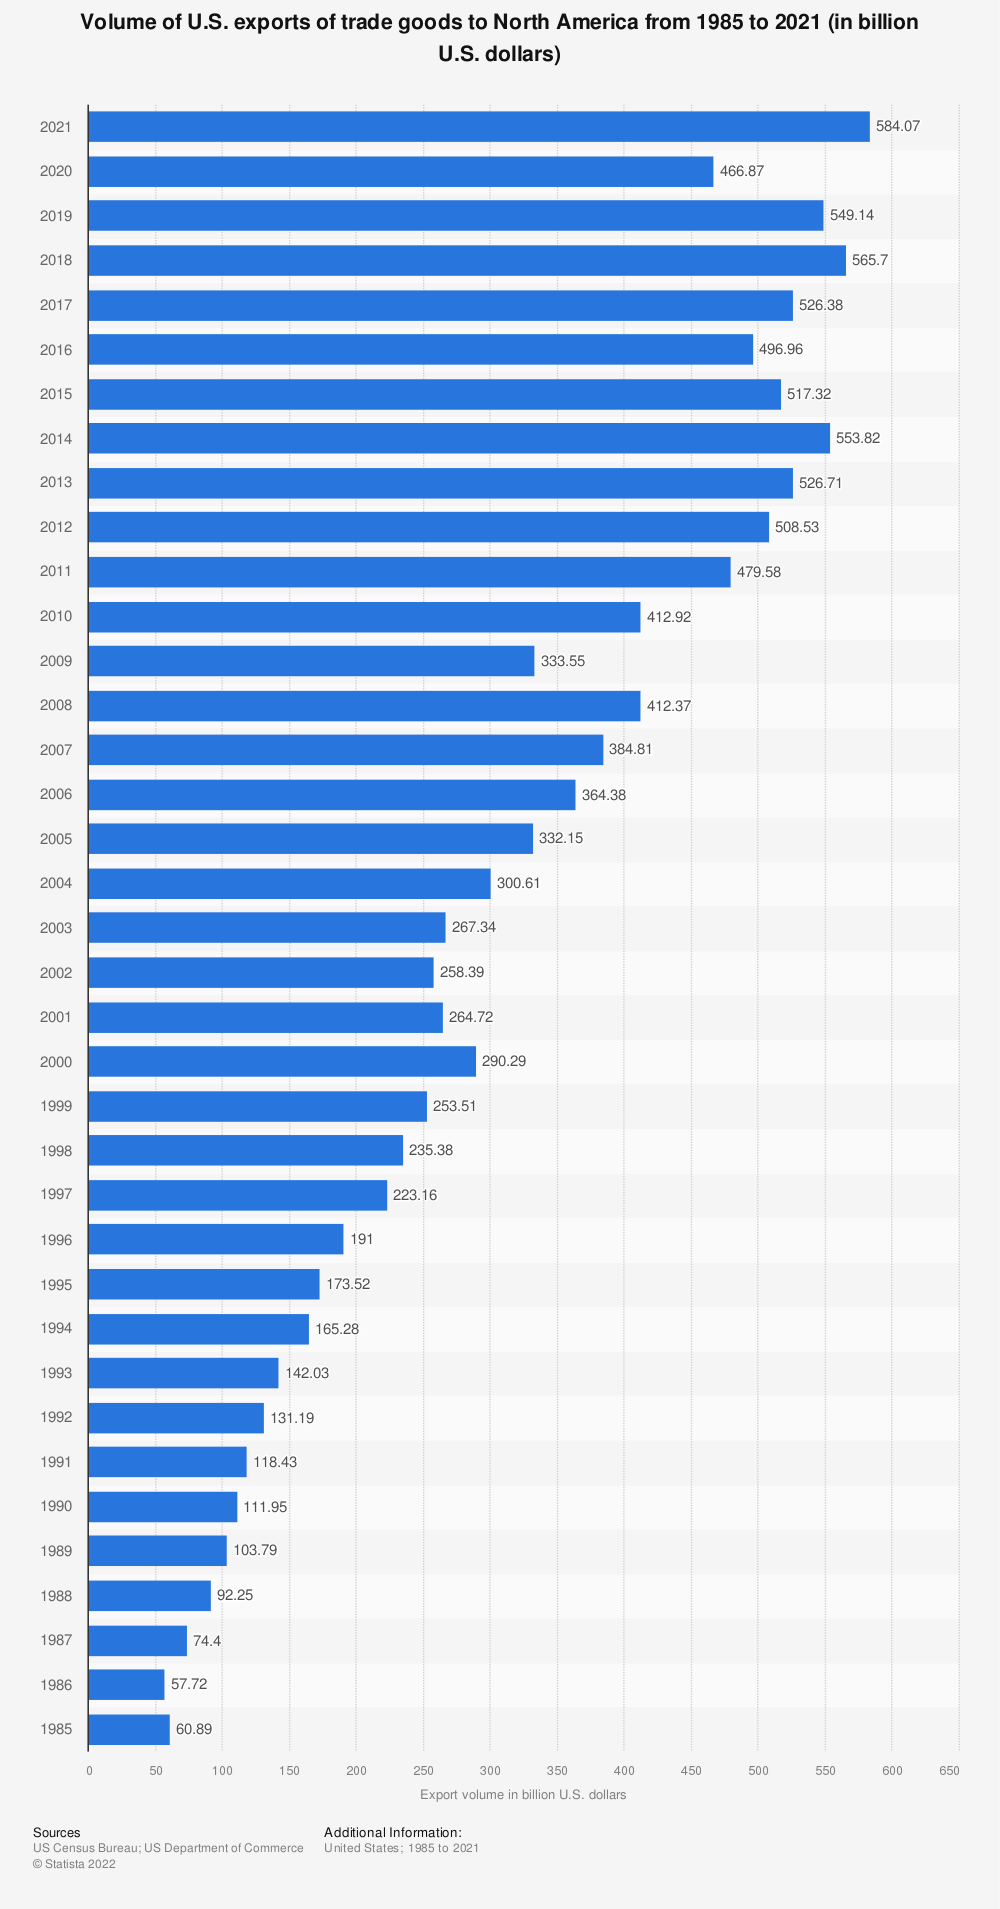 Statistic: Volume of U.S. exports of trade goods to North America from 1985 to 2019 (in billion U.S. dollars) | Statista